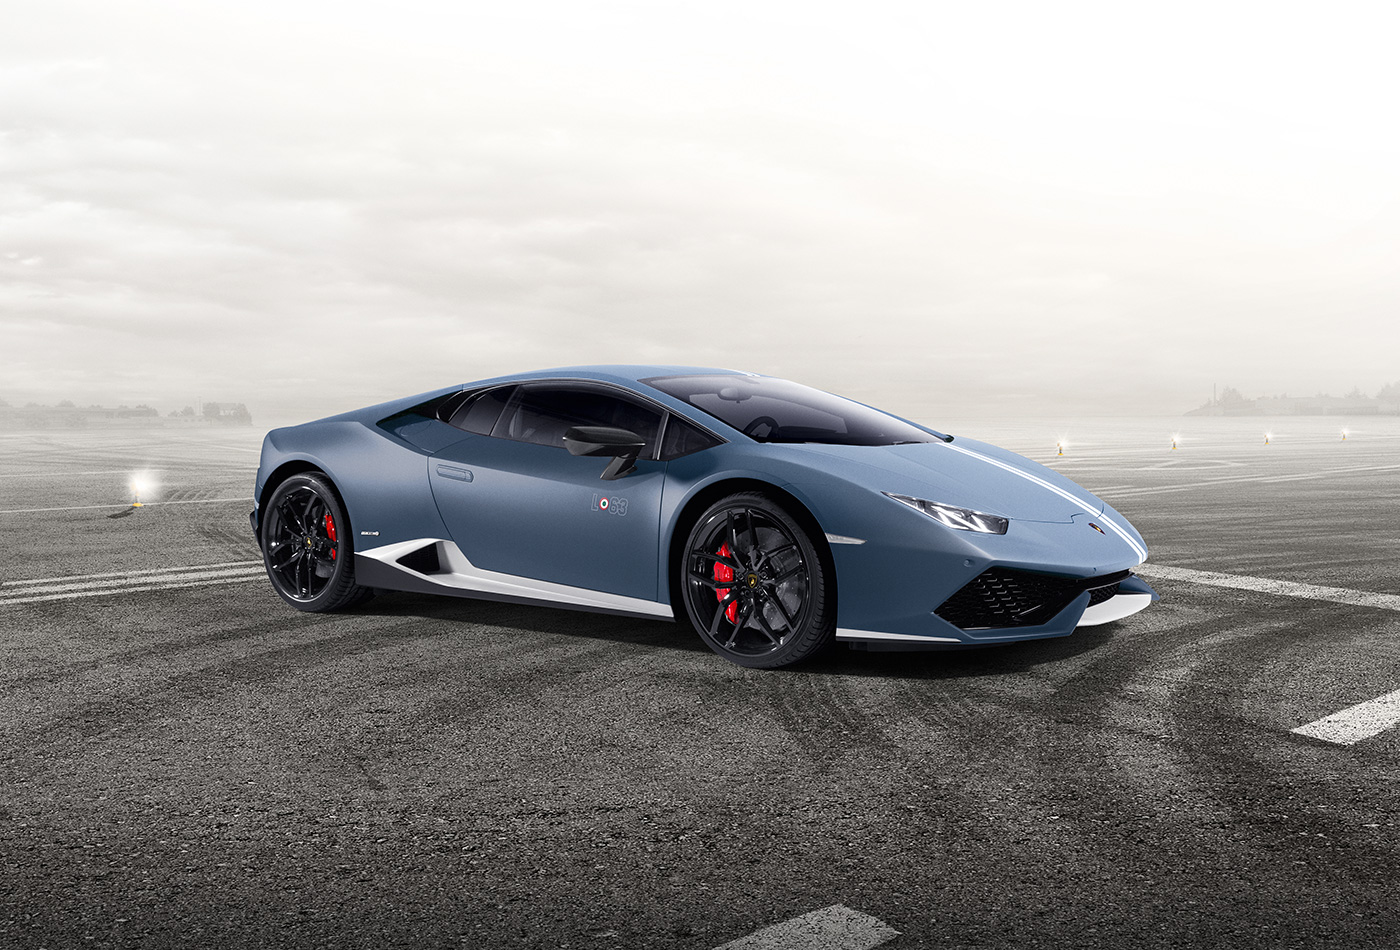 lamborghini huracan lp 610 4 avio guidare un aereo motori prezzi e novit. Black Bedroom Furniture Sets. Home Design Ideas